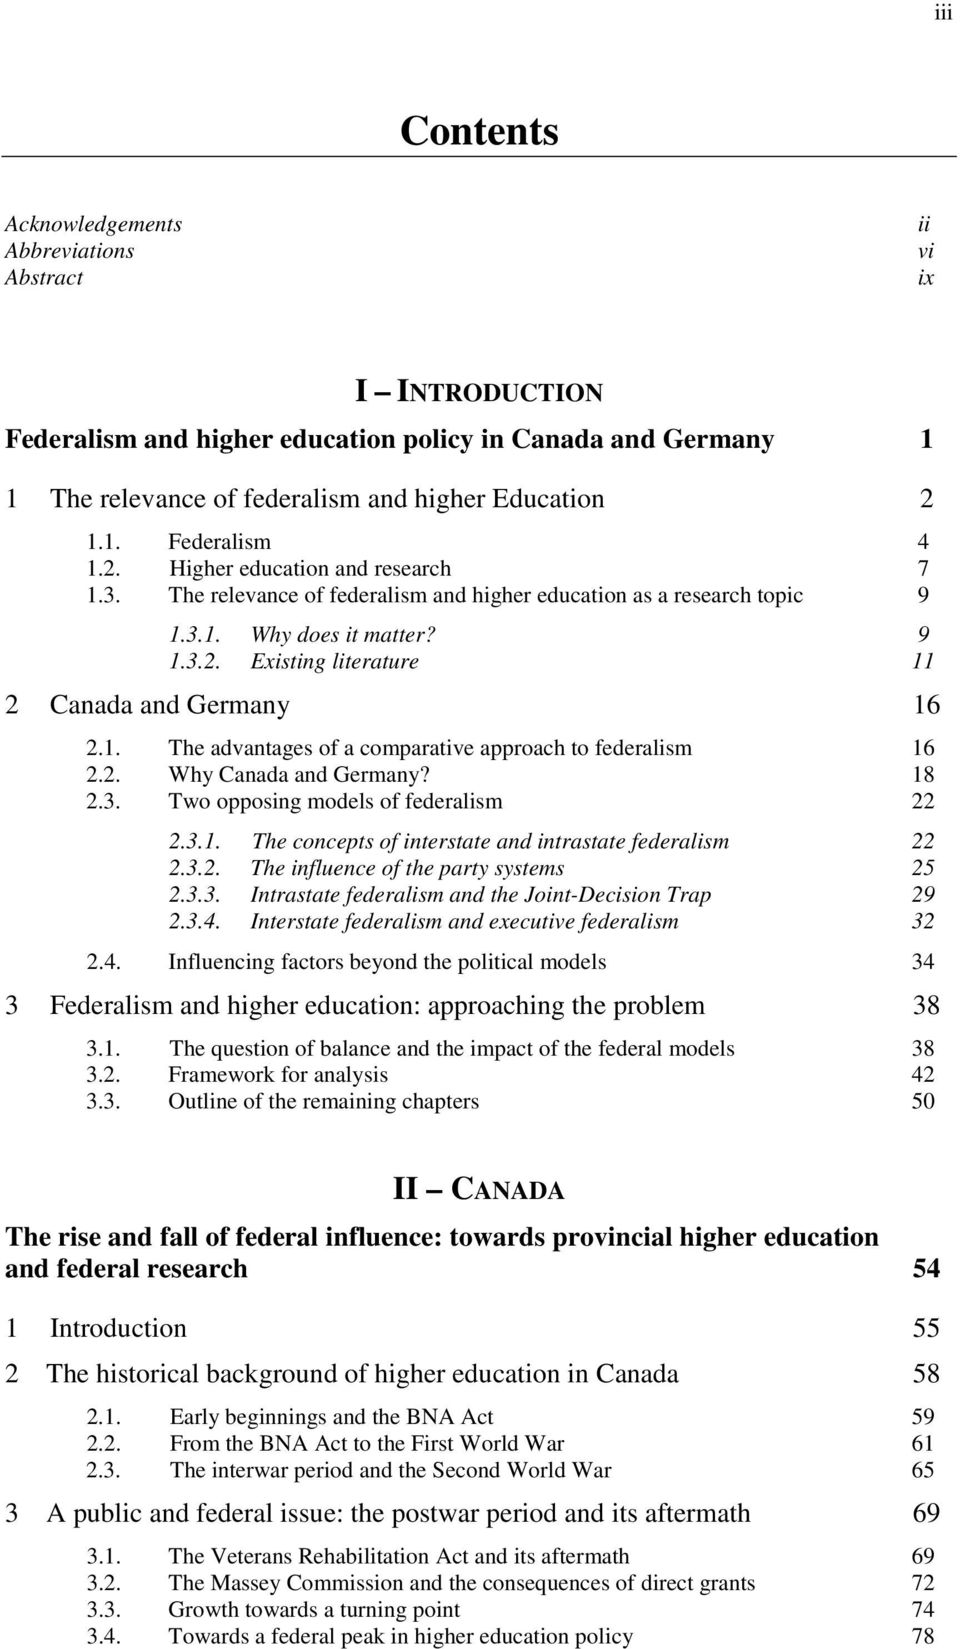 2. Why Canada and Germany? 18 2.3. Two opposing models of federalism 22 2.3.1. The concepts of interstate and intrastate federalism 22 2.3.2. The influence of the party systems 25 2.3.3. Intrastate federalism and the Joint-Decision Trap 29 2.